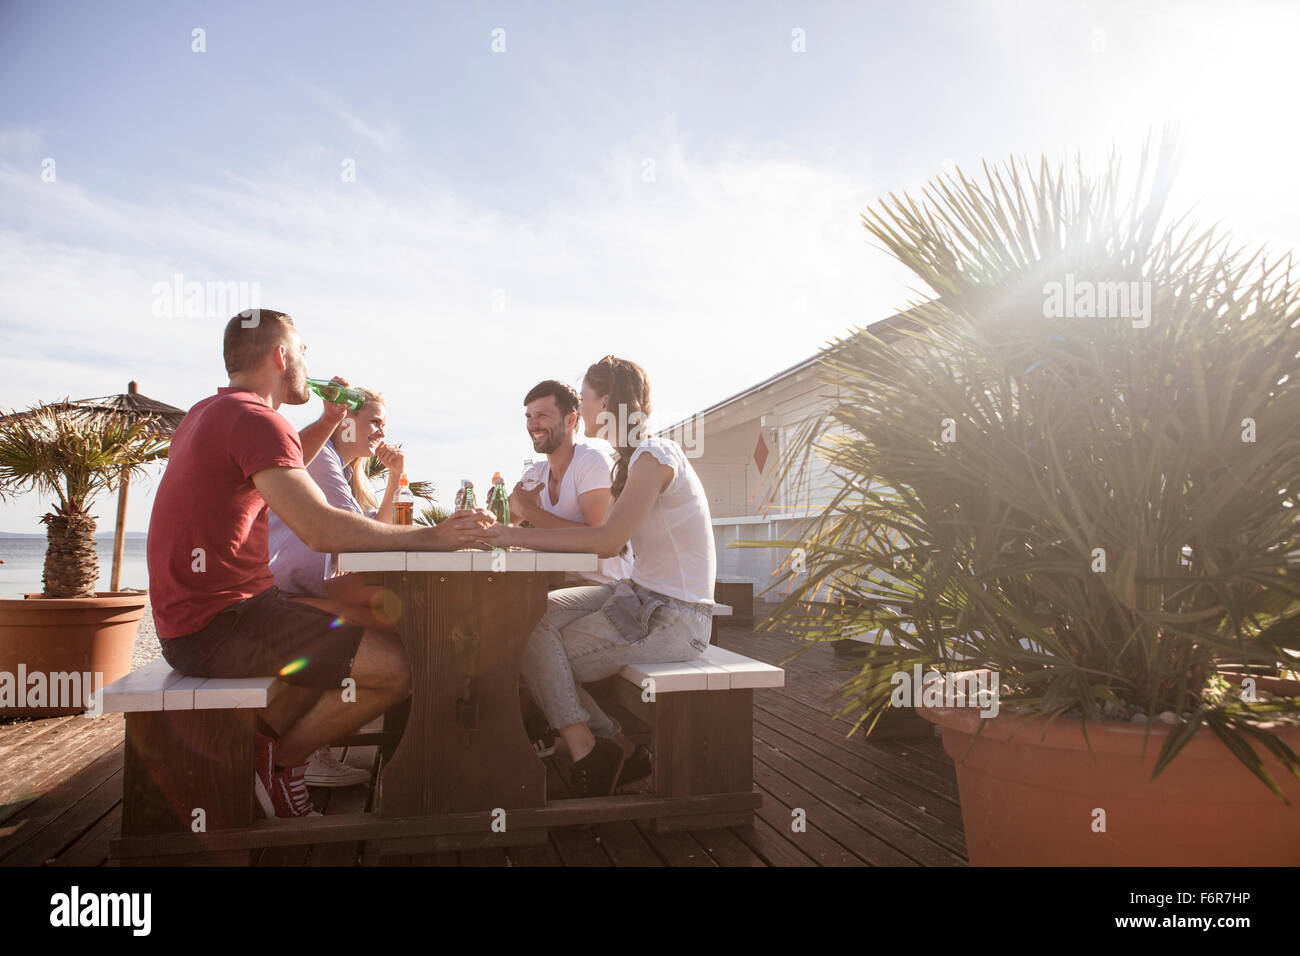 Group of friends celebrating in beach bar - Stock Image